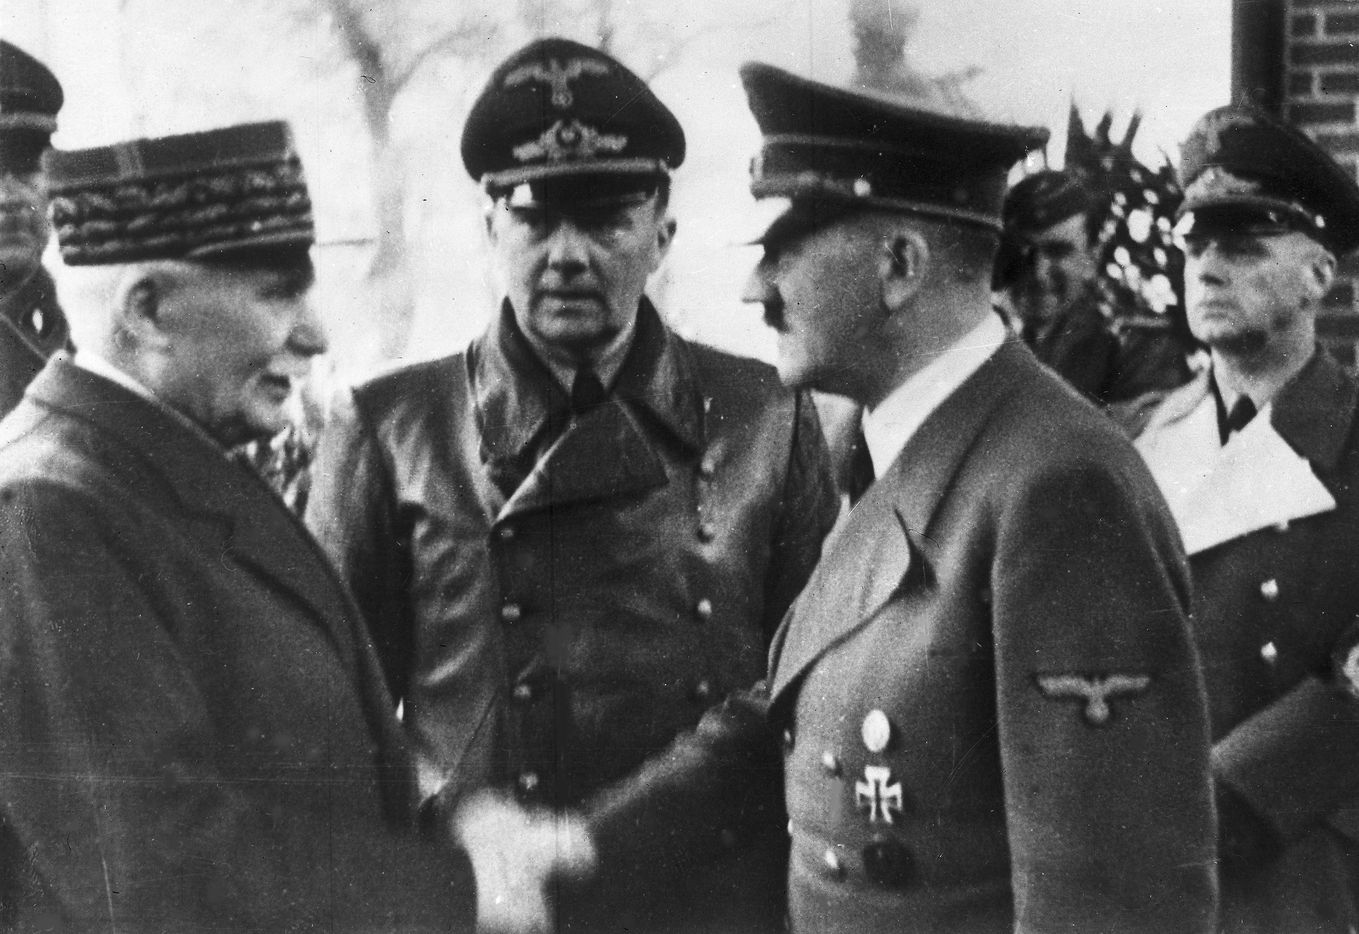 A photo taken Oct. 24, 1940, shows Adolf Hitler (right) shaking hands with Head of State of Vichy France Philippe Petain in occupied France.